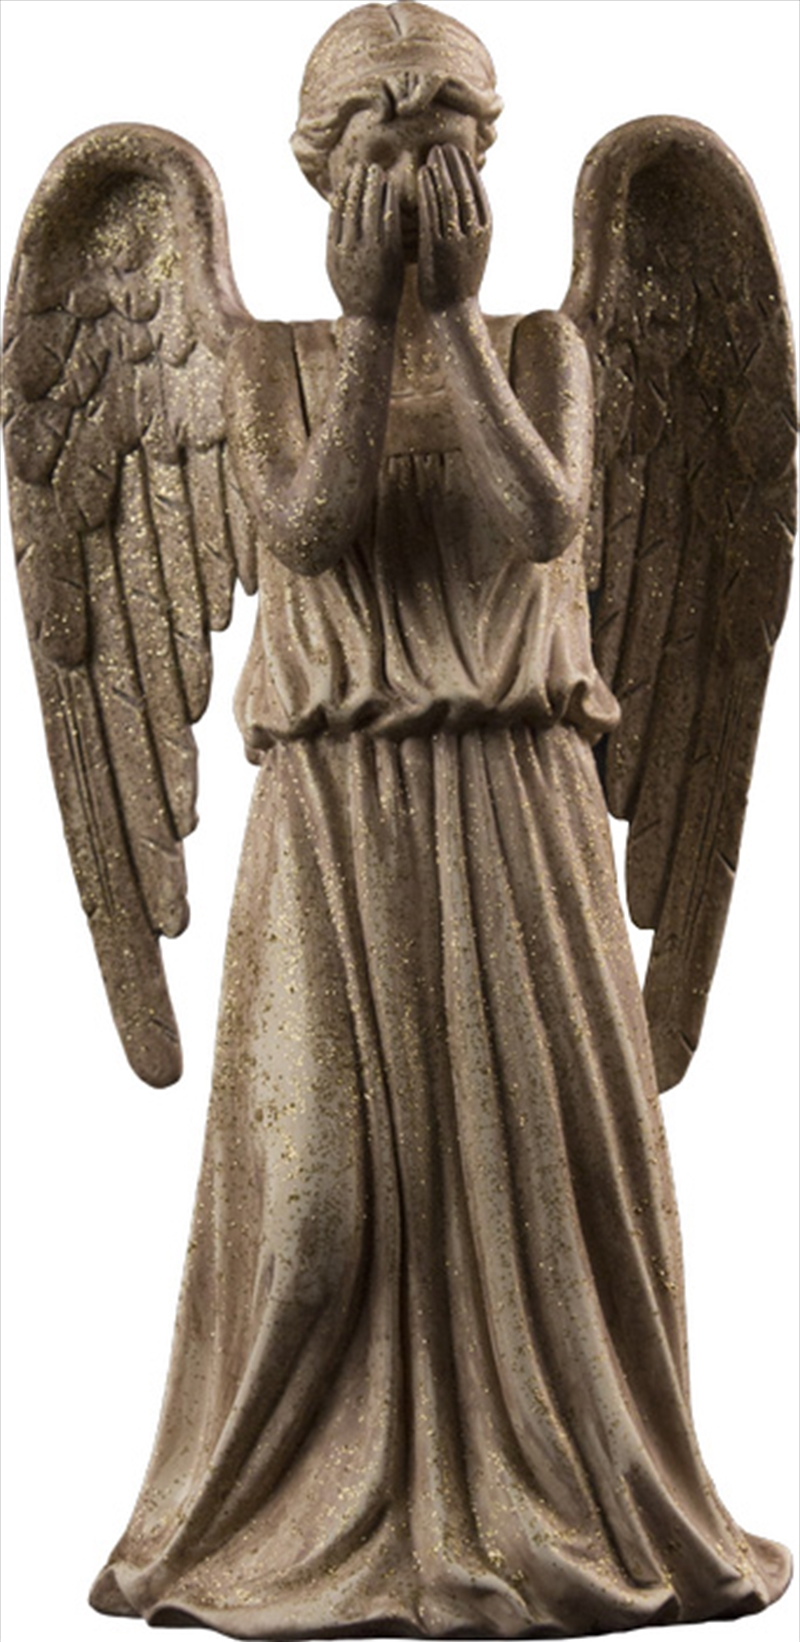 Doctor Who Weeping Angel Toppe | Merchandise